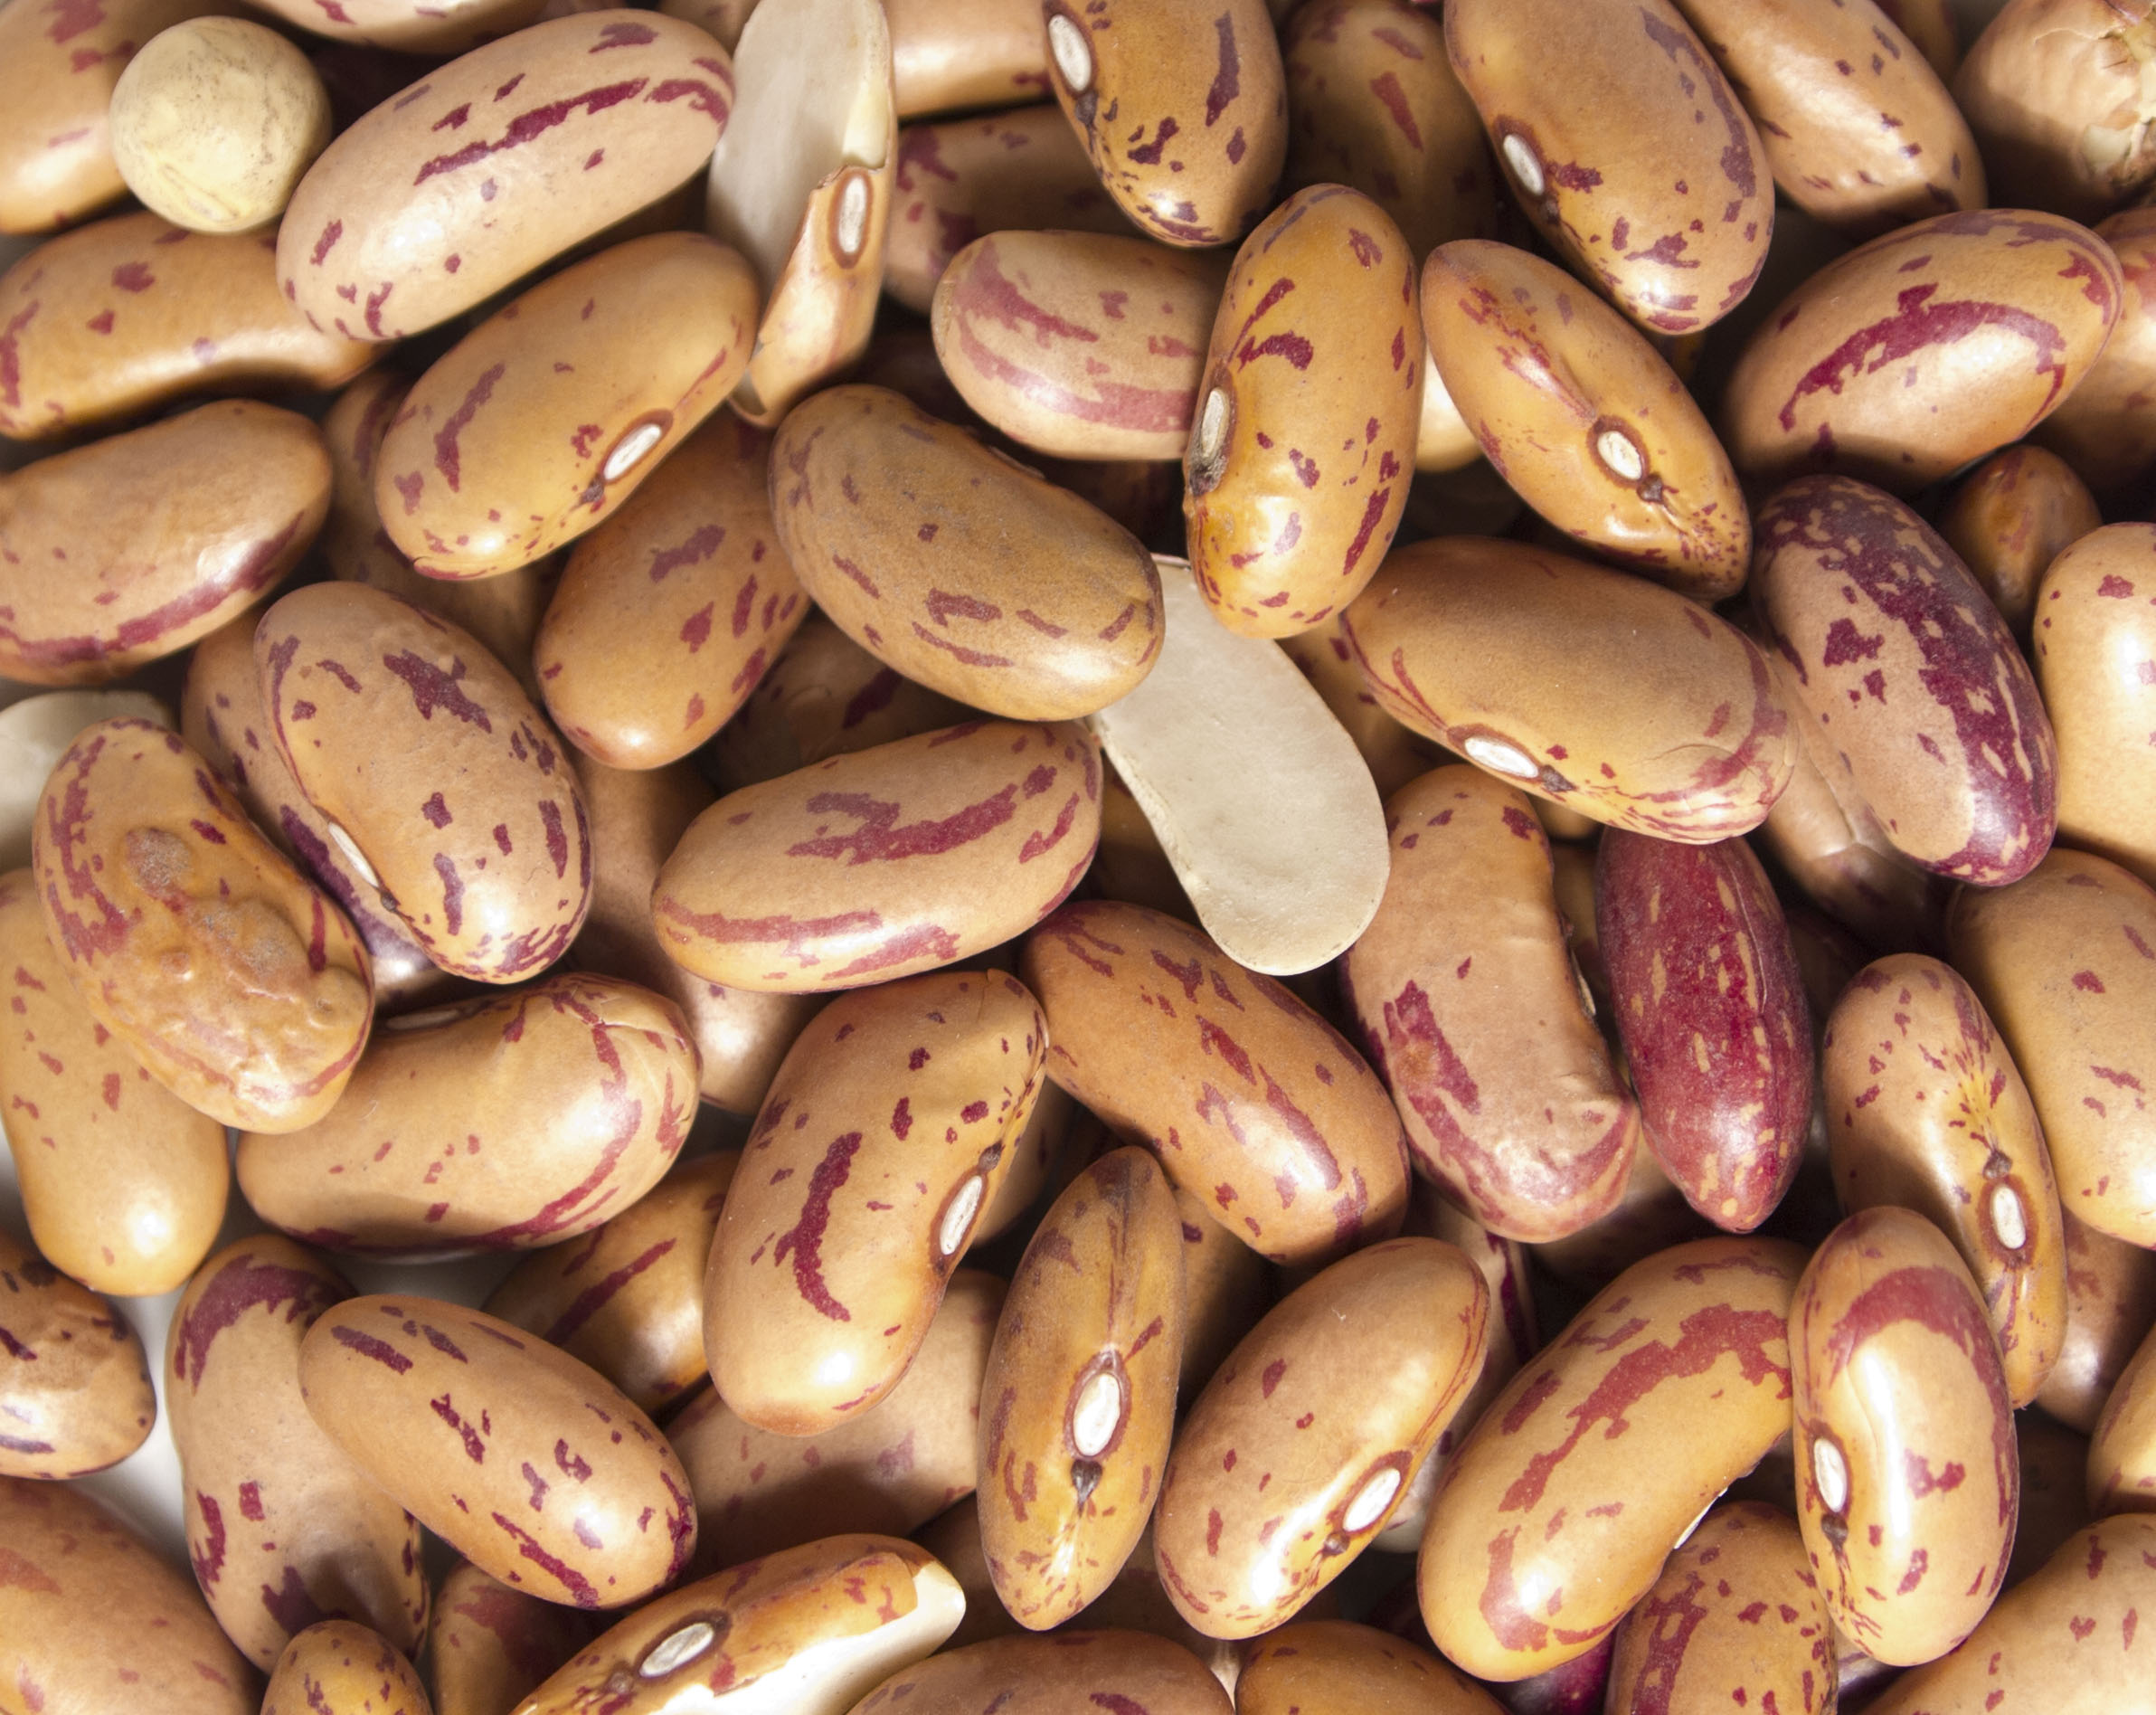 Rose cocoa beans